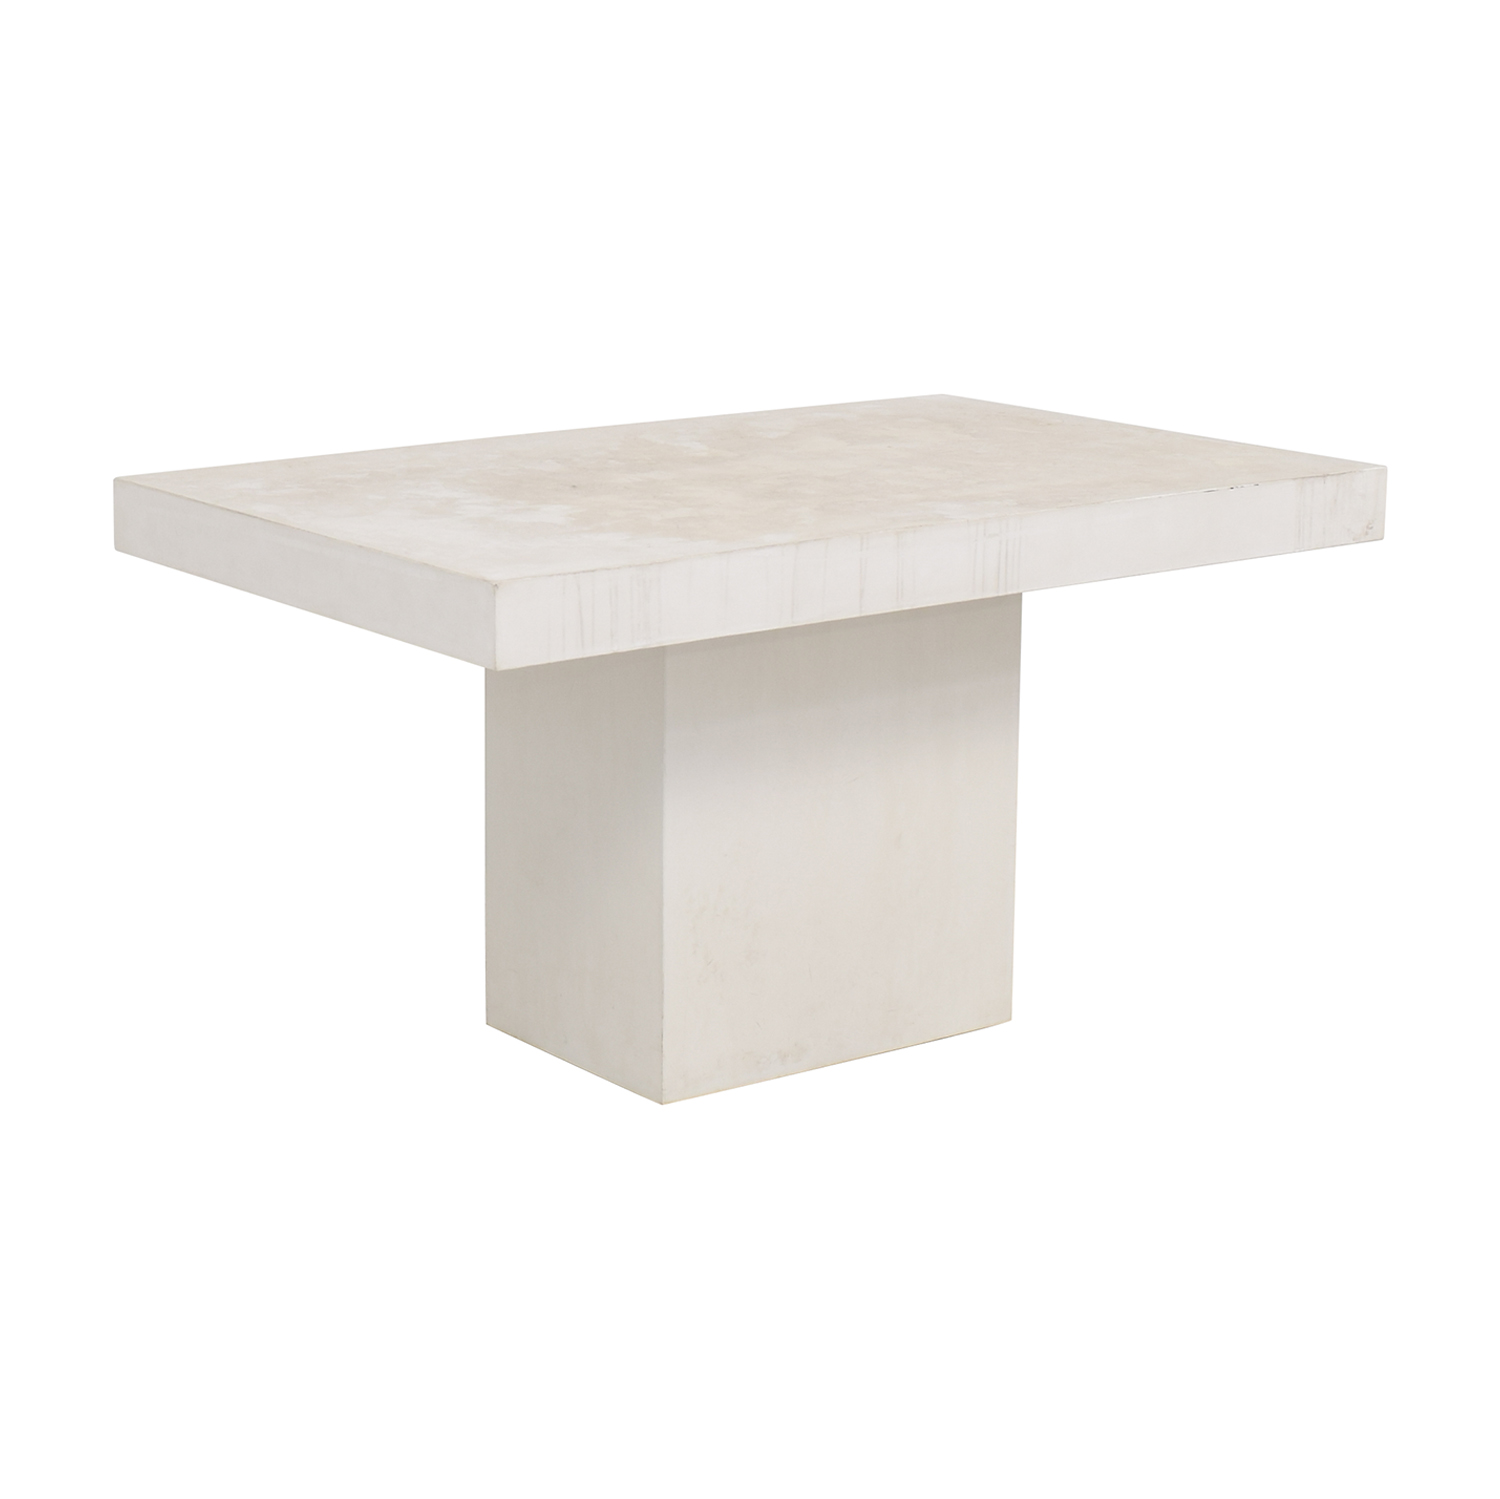 Outstanding 28 Off Cb2 Cb2 Fuze Ivory White Stone Dining Table Tables Caraccident5 Cool Chair Designs And Ideas Caraccident5Info